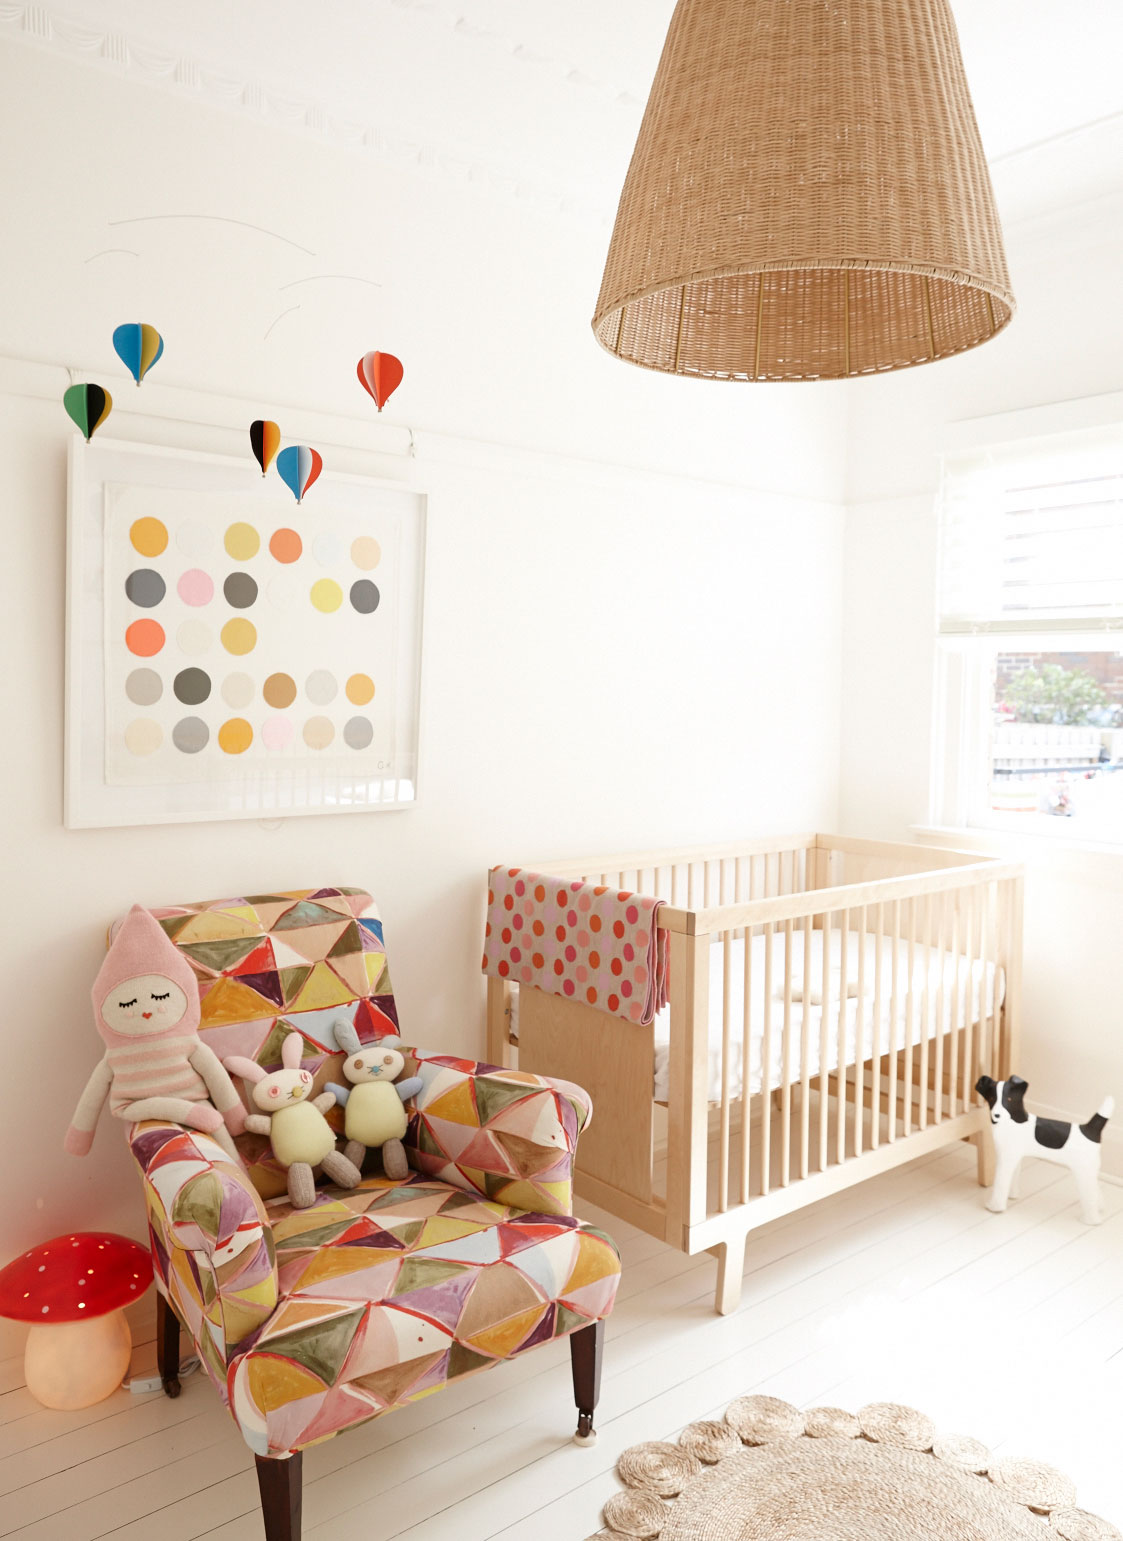 Natural Timber Cot The Nursery Edit Inspiration Essentials From The Paradise